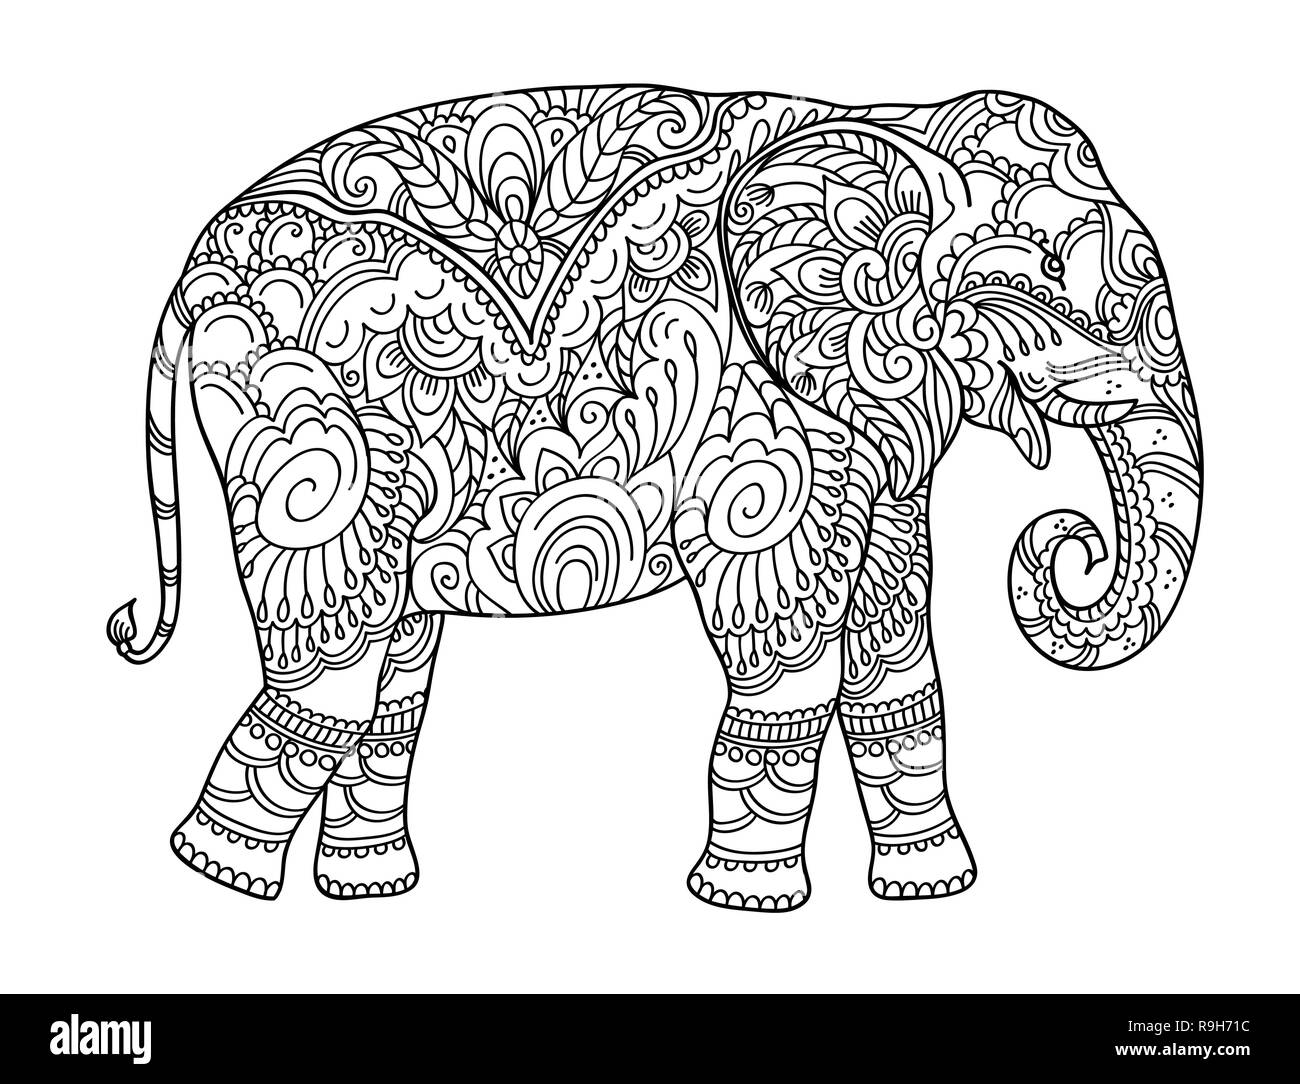 Zentangle Elefant Vorlage Elephant Ornament Vector Stockfotos Elephant Ornament